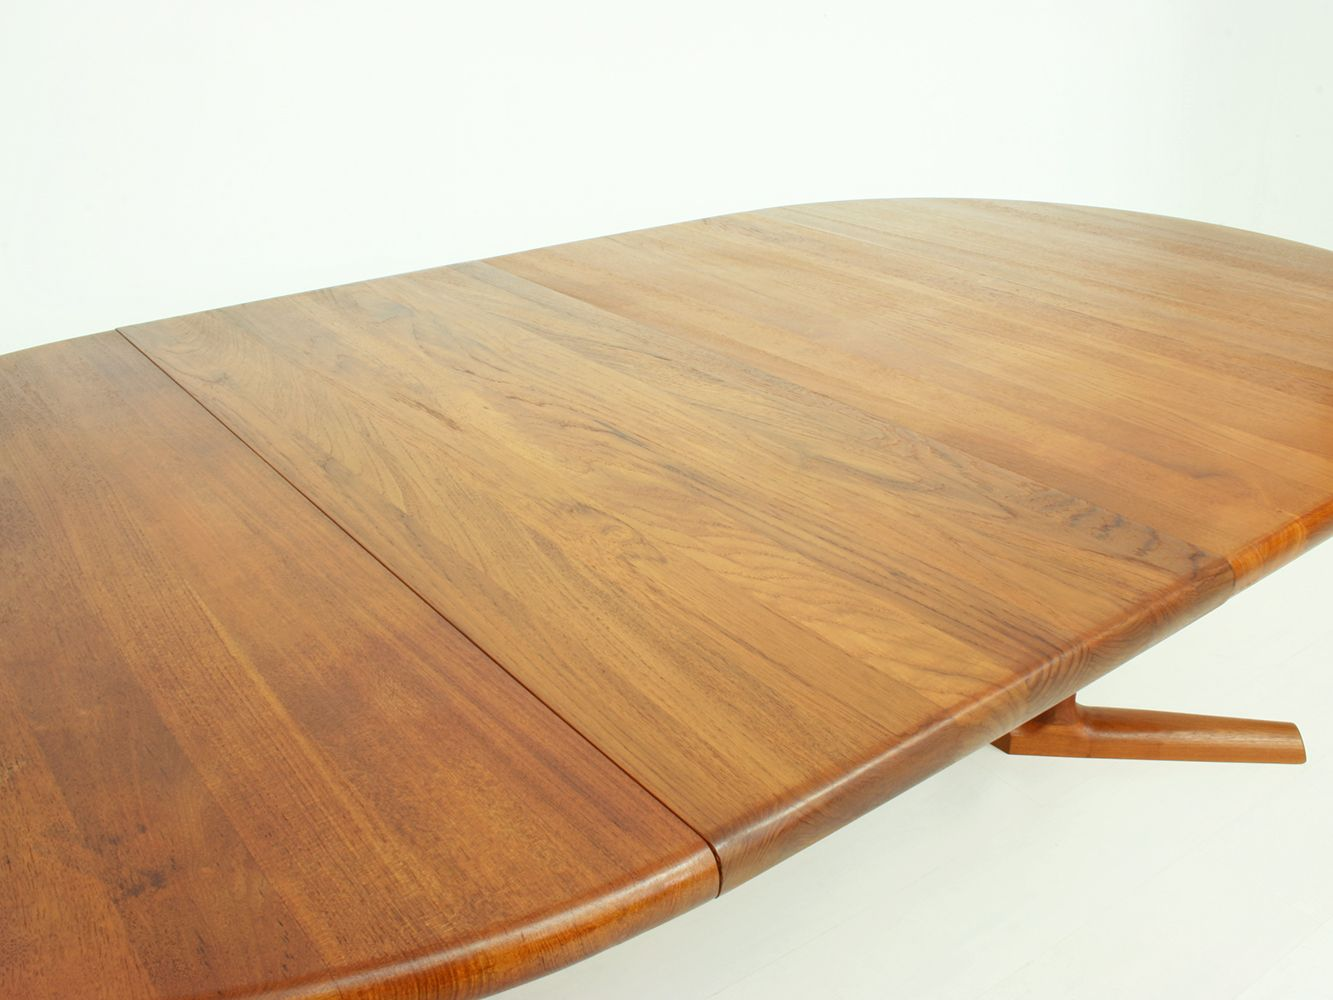 Danish Extendible Solid Teak Dining Table from Dyrlund  : danish extendible solid teak dining table from dyrlund 1960s 8 from www.pamono.co.uk size 1333 x 1000 jpeg 693kB